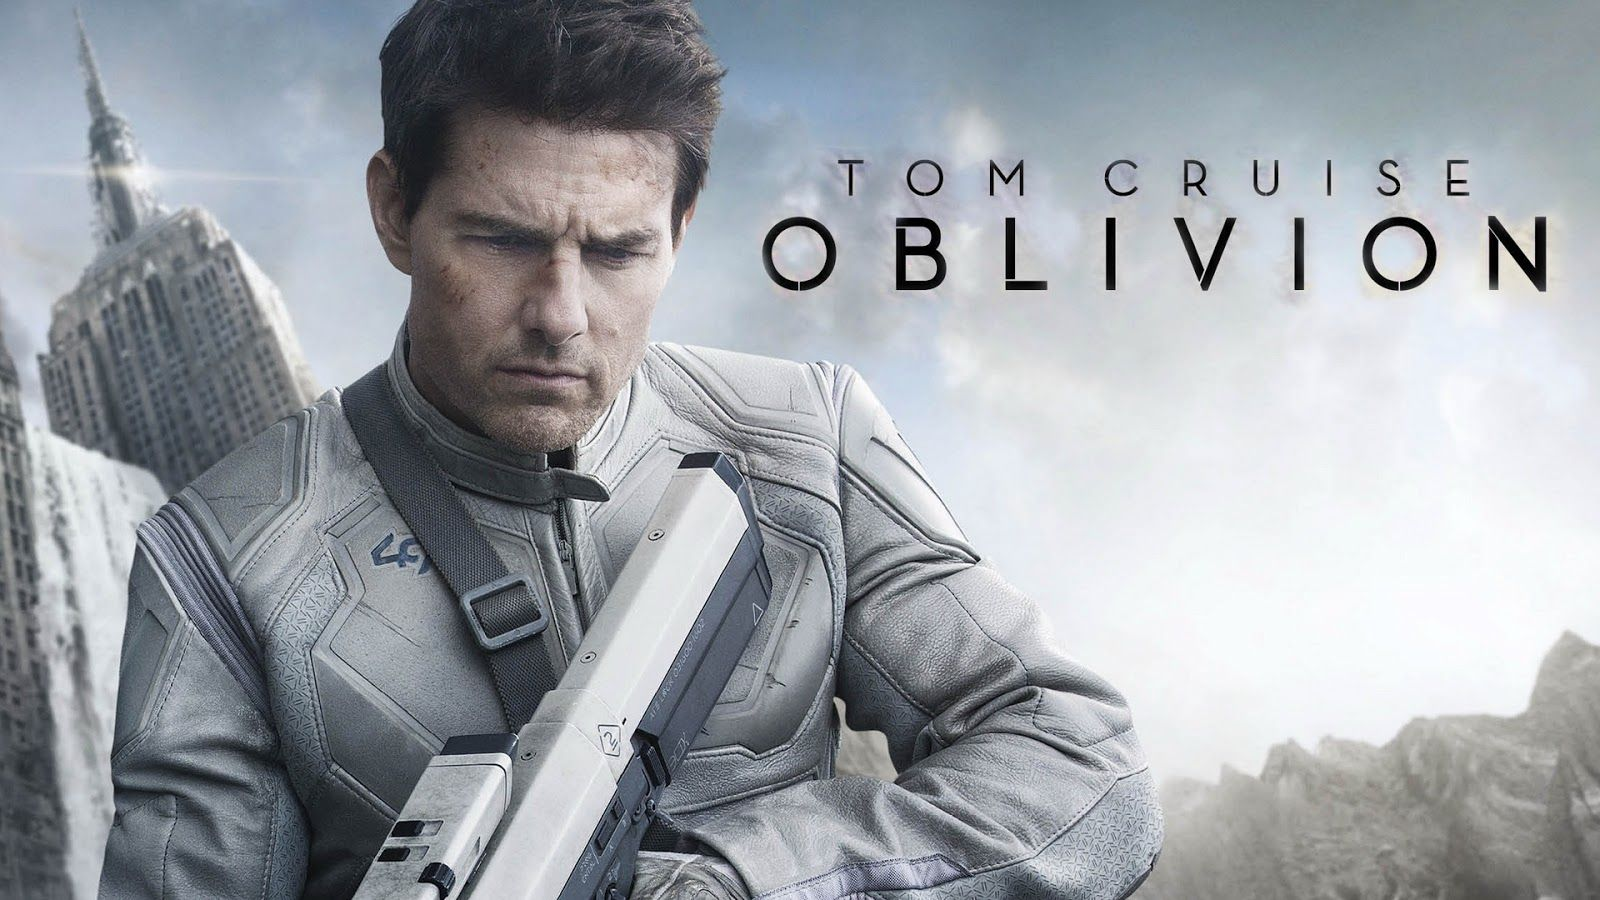 tom cruise oblivion movie wallpaper | ll | pinterest | oblivion movie